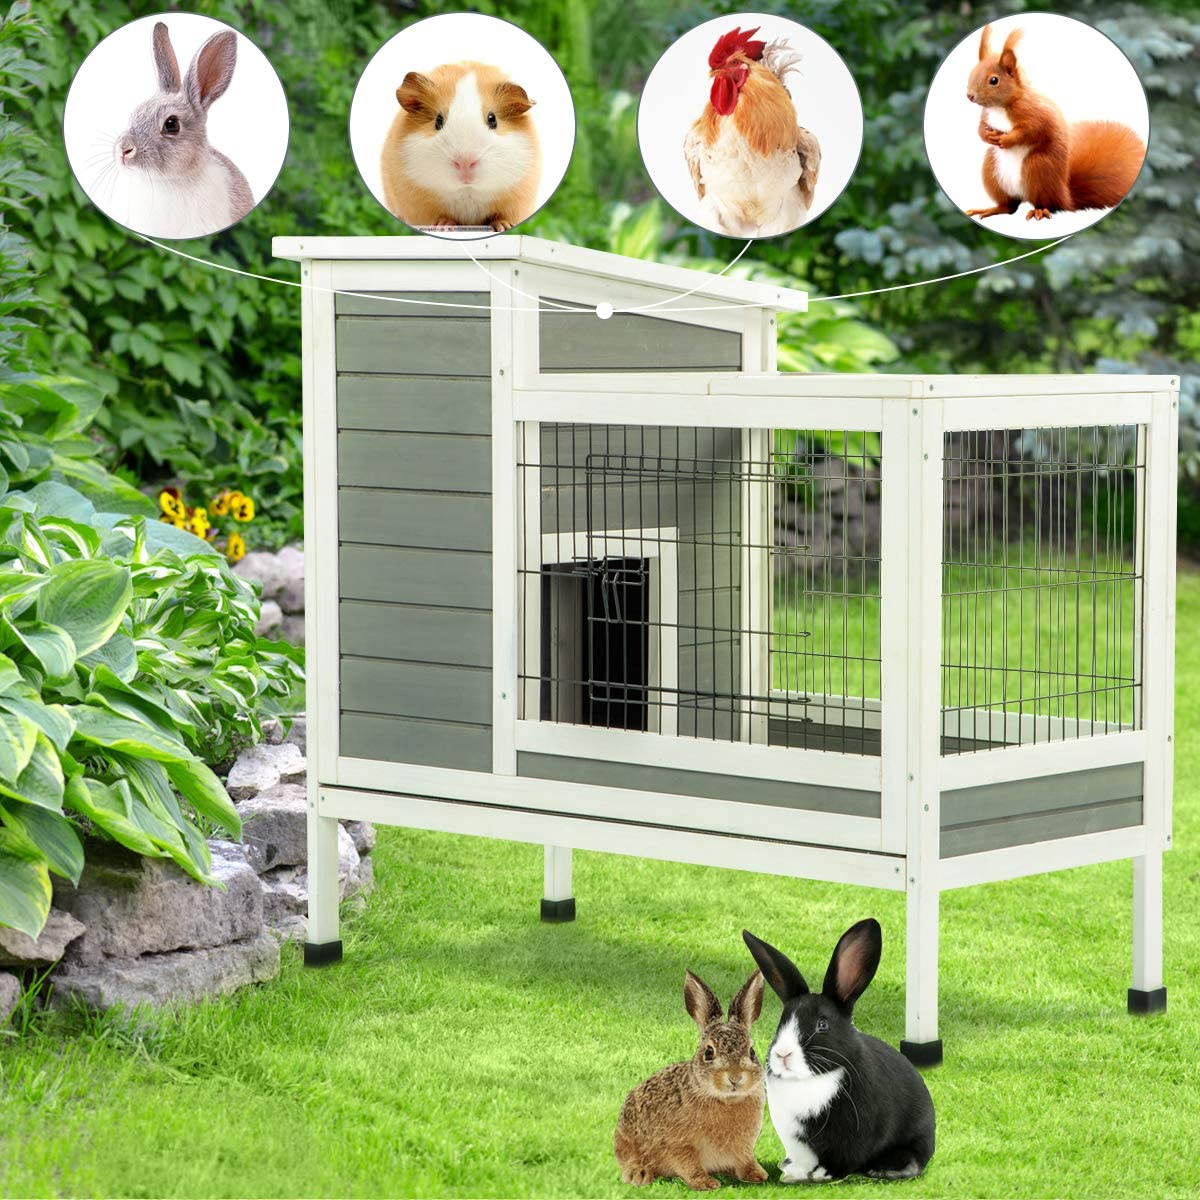 U-MAX Rabbit Hutch Pet House for Small Animals Guinea Pig House Rabbit Cage with Run Bunny House Indoor /& Outdoor